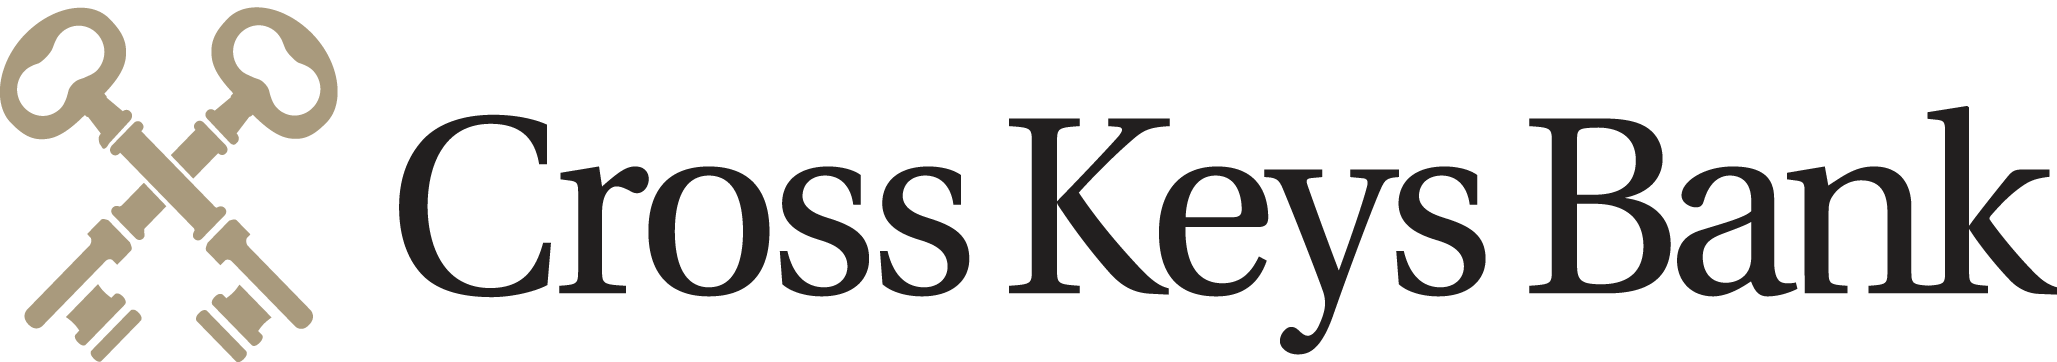 Cross Keys Bank logo